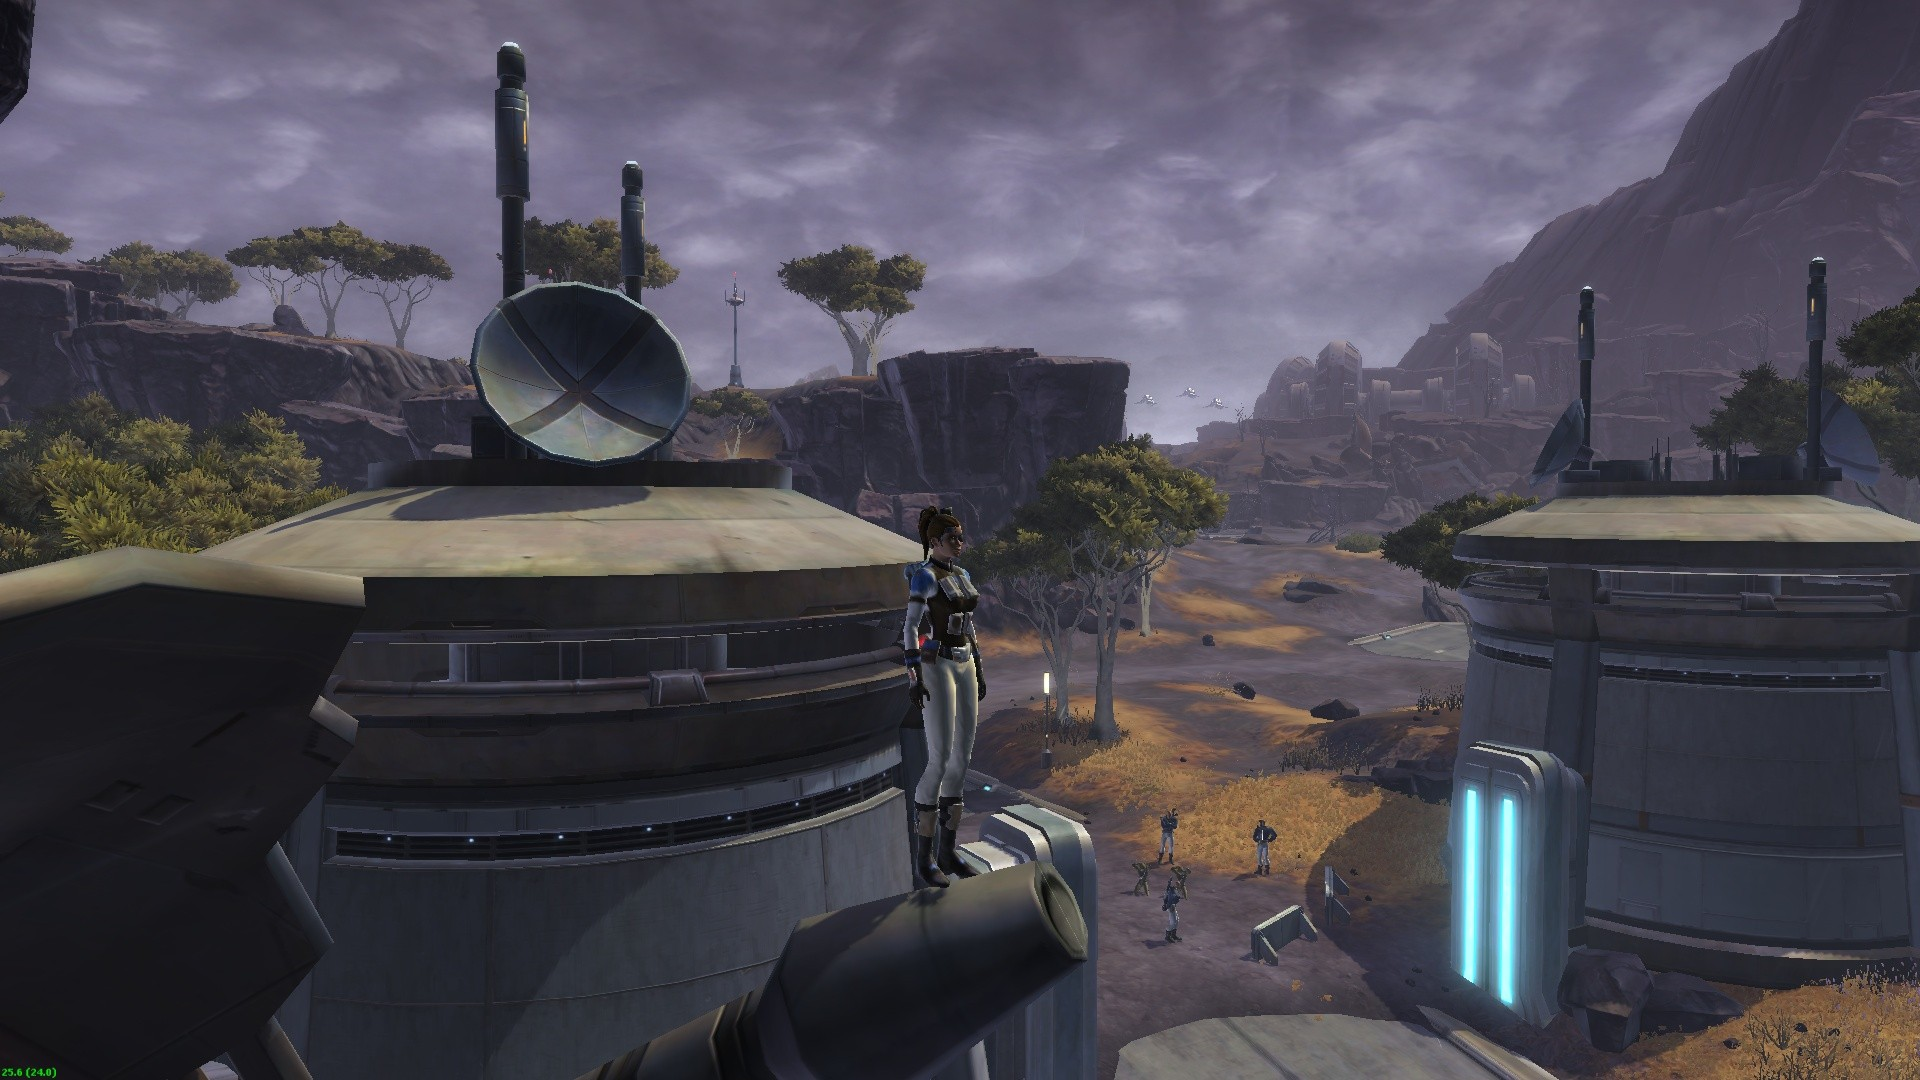 Star Wars: The Old Republic - My trooper on Ord Mantell